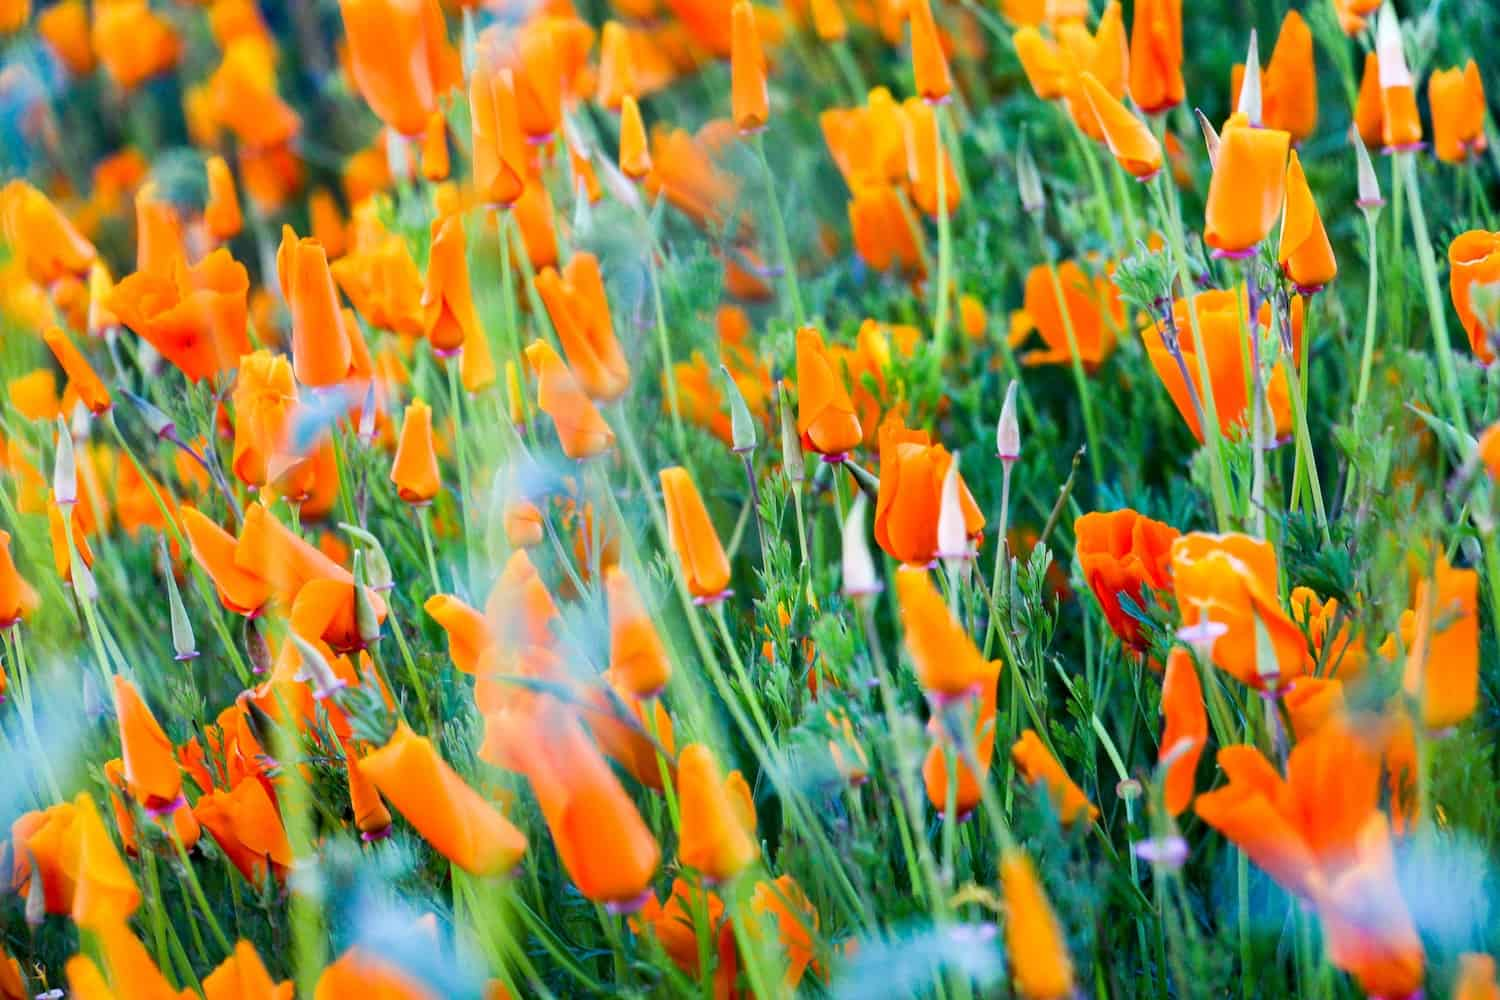 Field of California Poppies that haven't opened yet